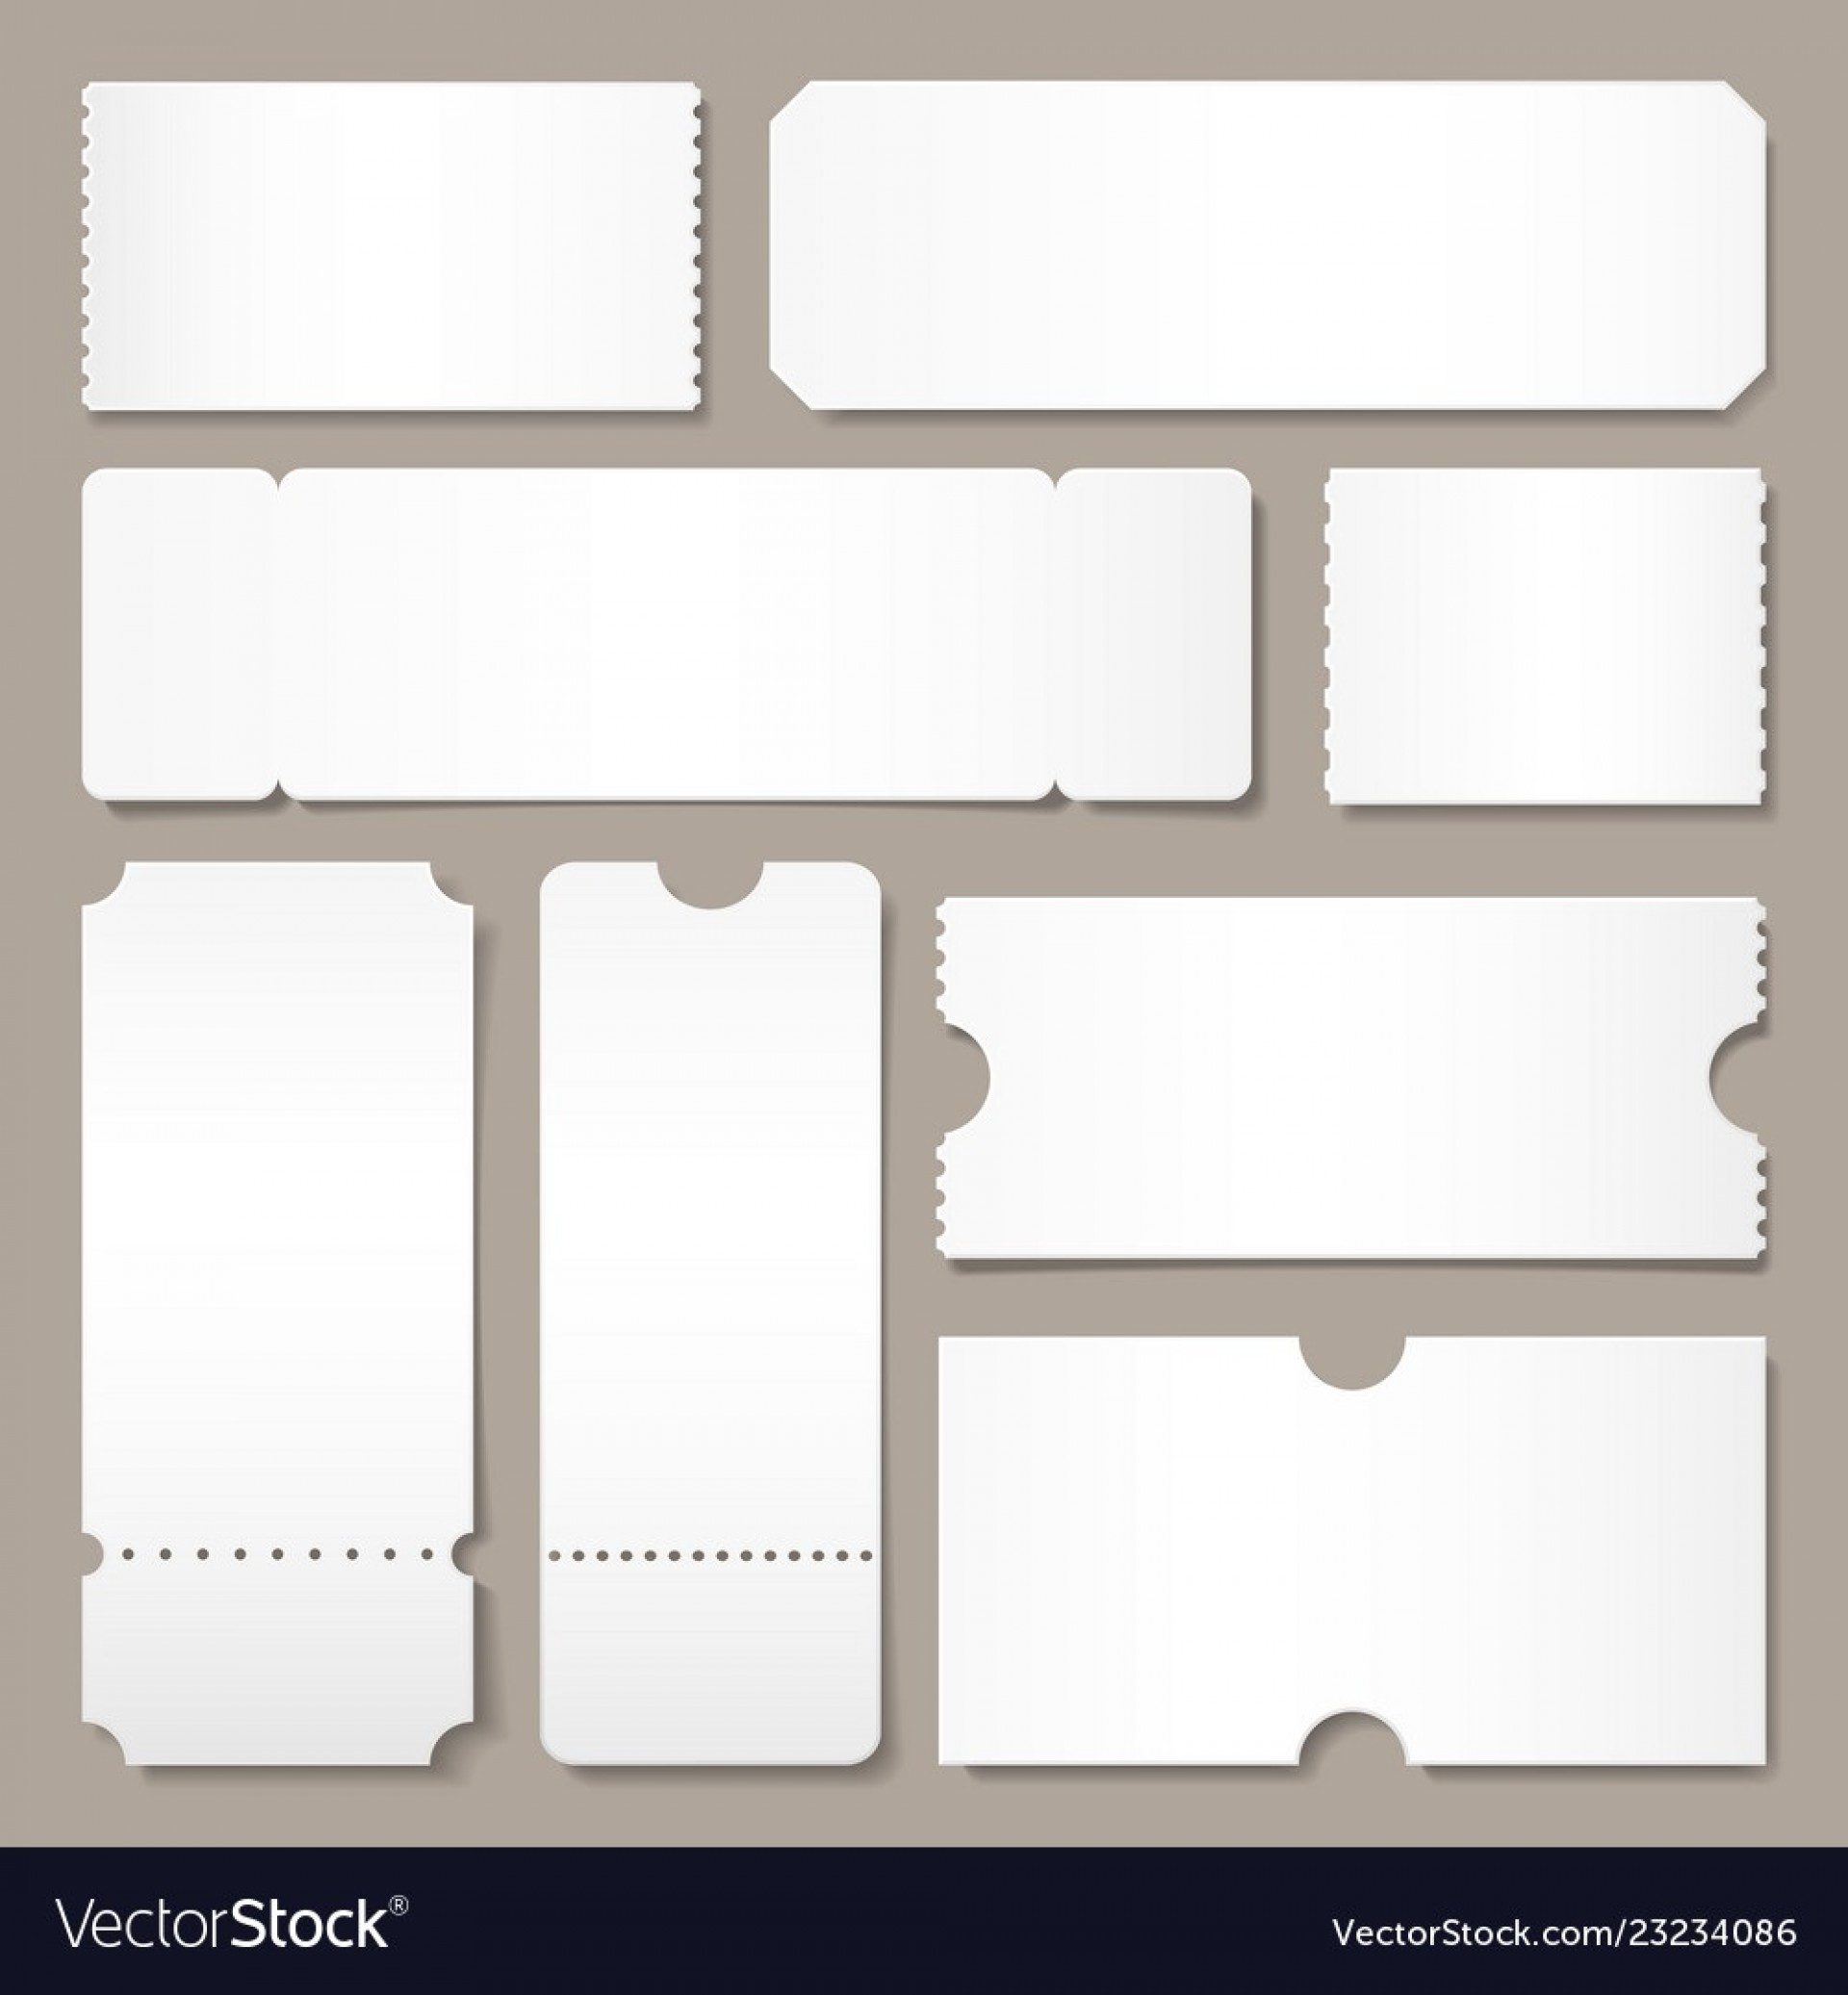 004 Remarkable Free Editable Concert Ticket Template Idea  Psd Word1920